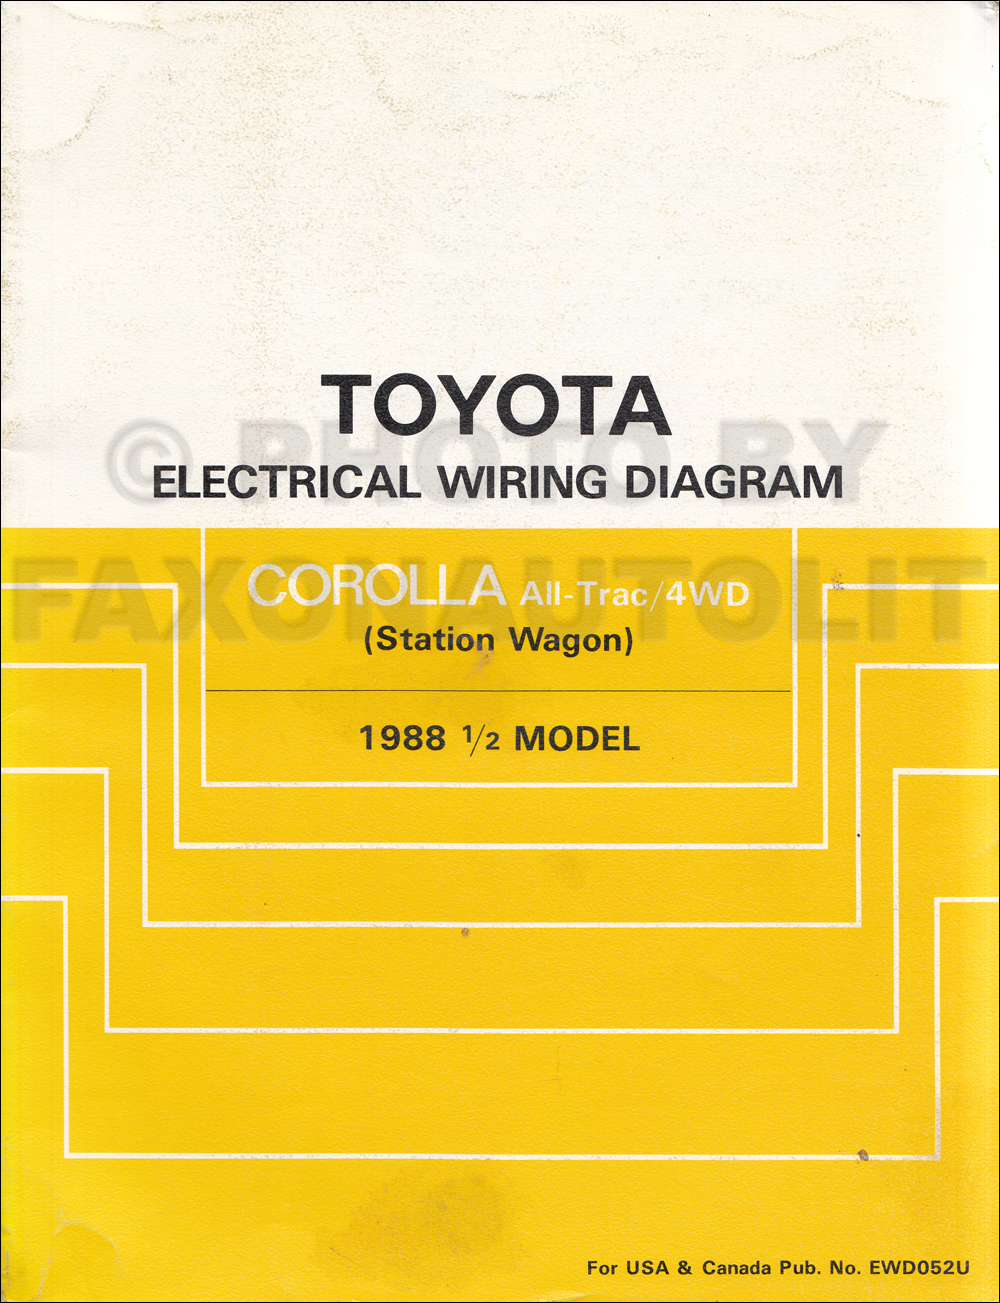 service manual wiring diagram ho schwabenschamanen de \u2022 Trailer Wiring Diagram PDF 1988 toyota corolla all trac 4wd station wagon wiring diagram rh faxonautoliterature com tesla model s service manual wiring diagram theory of operation